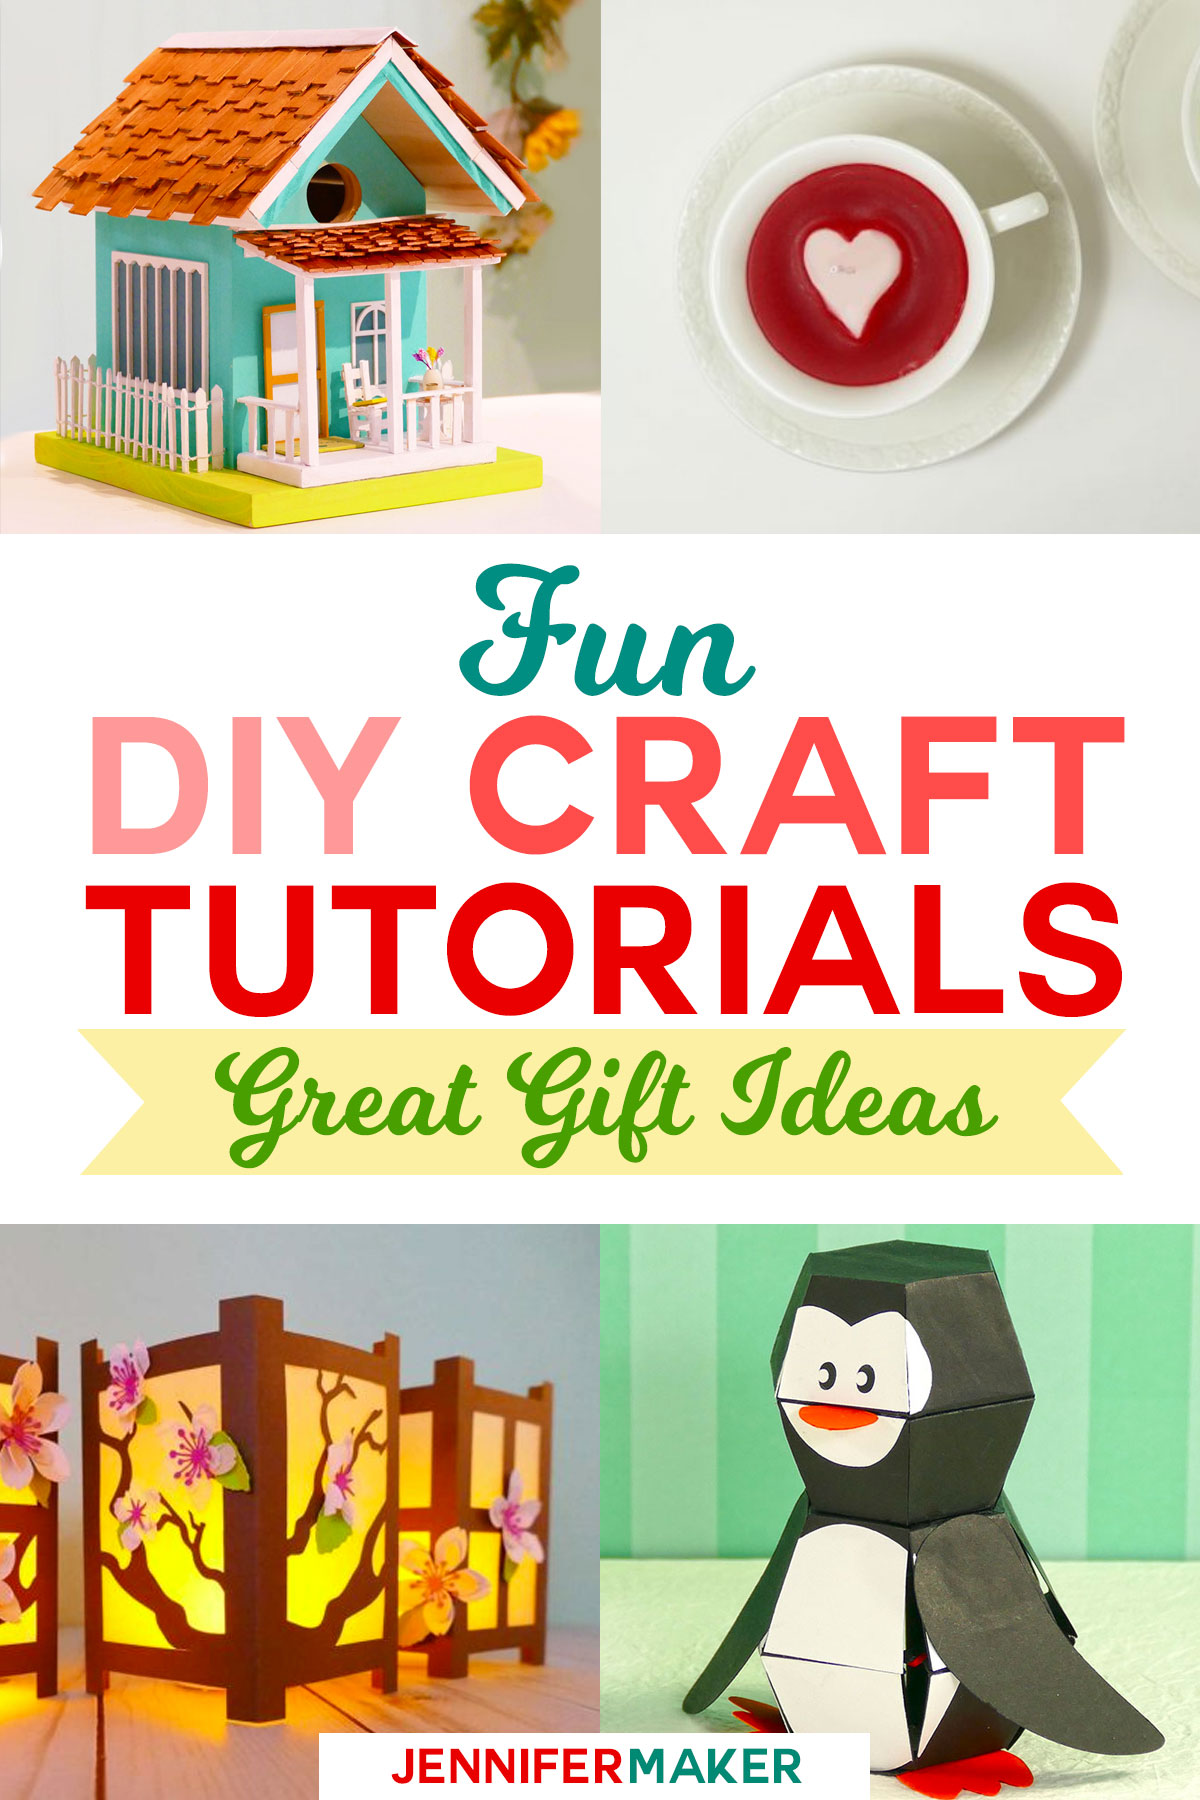 DIY Craft Tutorials, Fun to Make! | papercrafts | birdhouses | pop-up toys | teacup candles | full step-by-step tutorials and patterns! #diy #crafts #diygifts